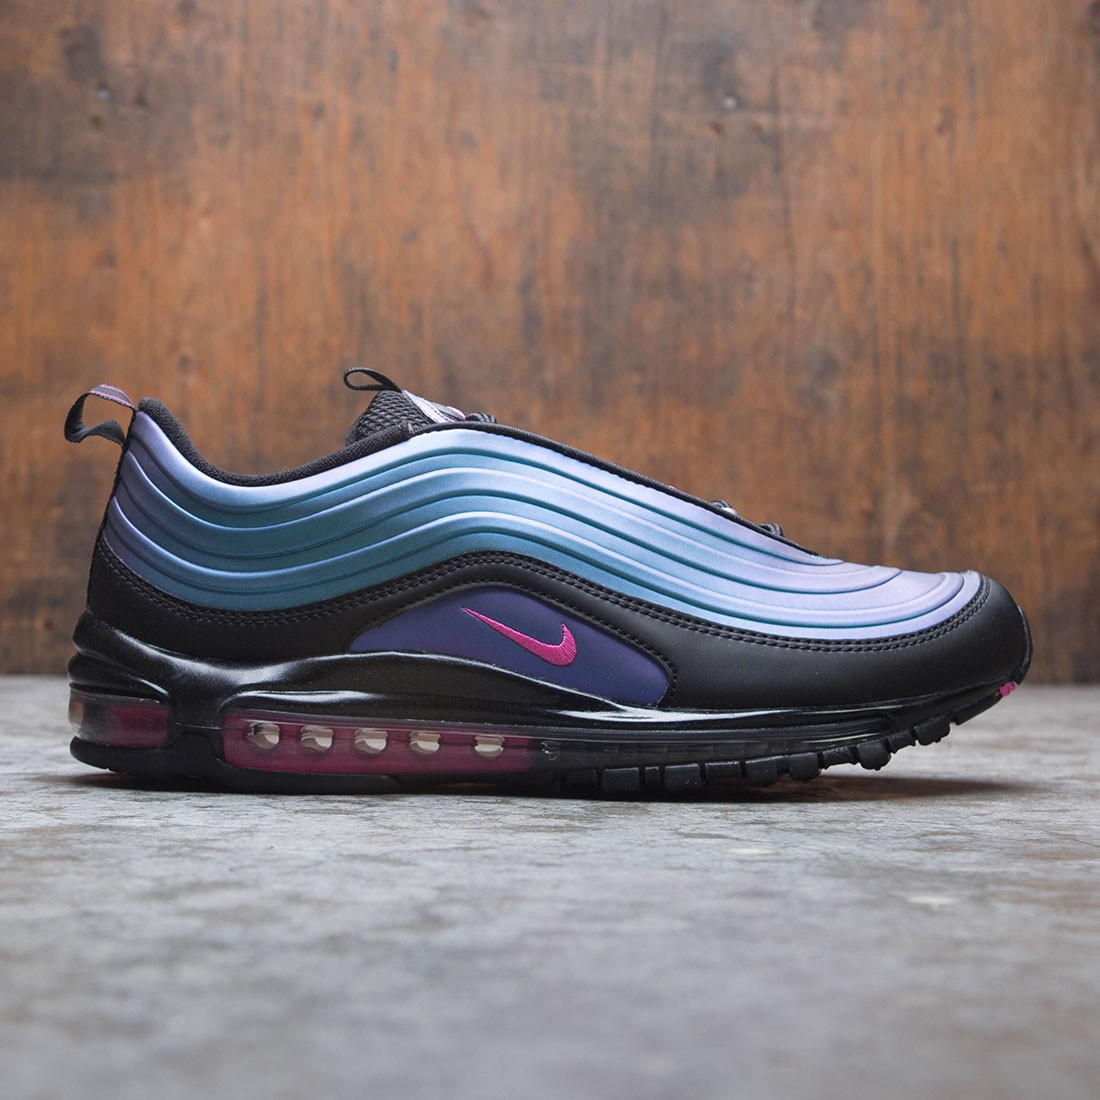 Nike Air Max 97 LX BlackLaser Fuchsia Thunder Grey